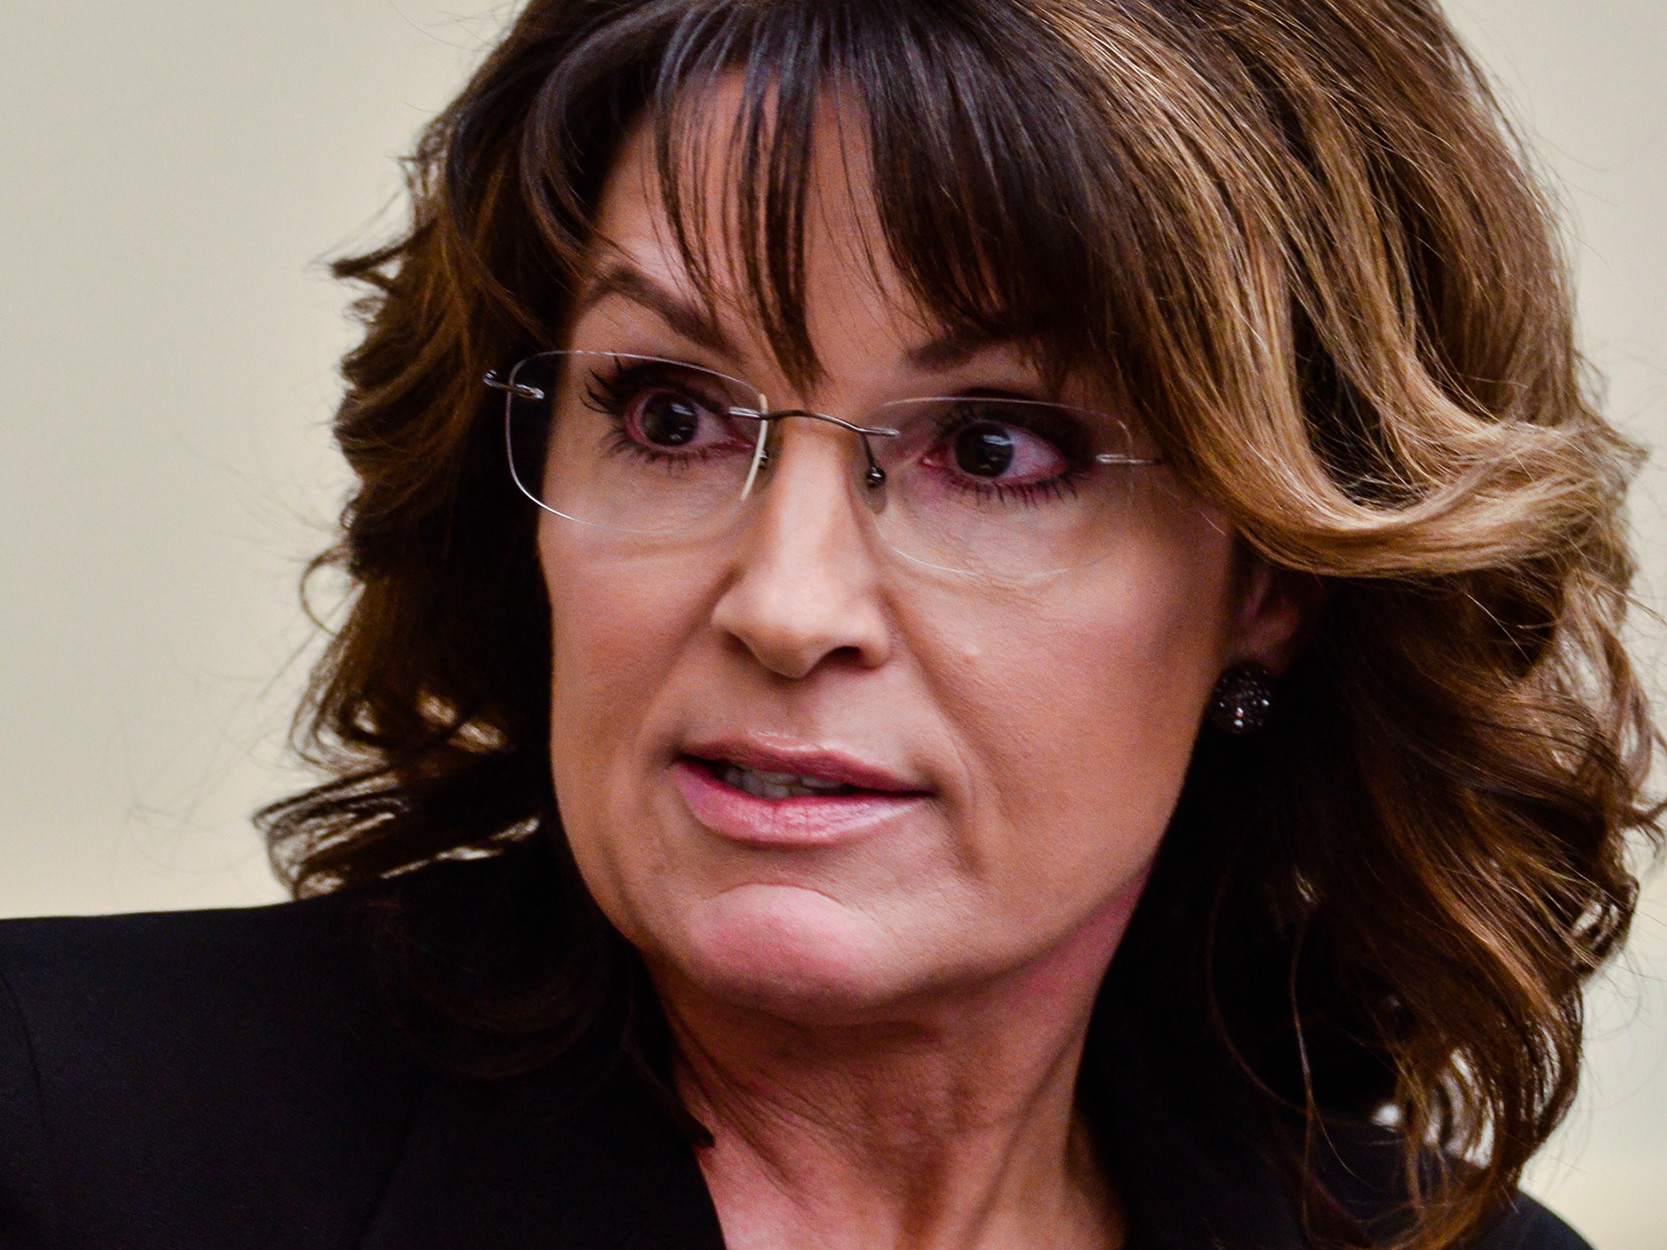 Sarah Palin found out about husband's plan for divorce in email, insists marriage is not over